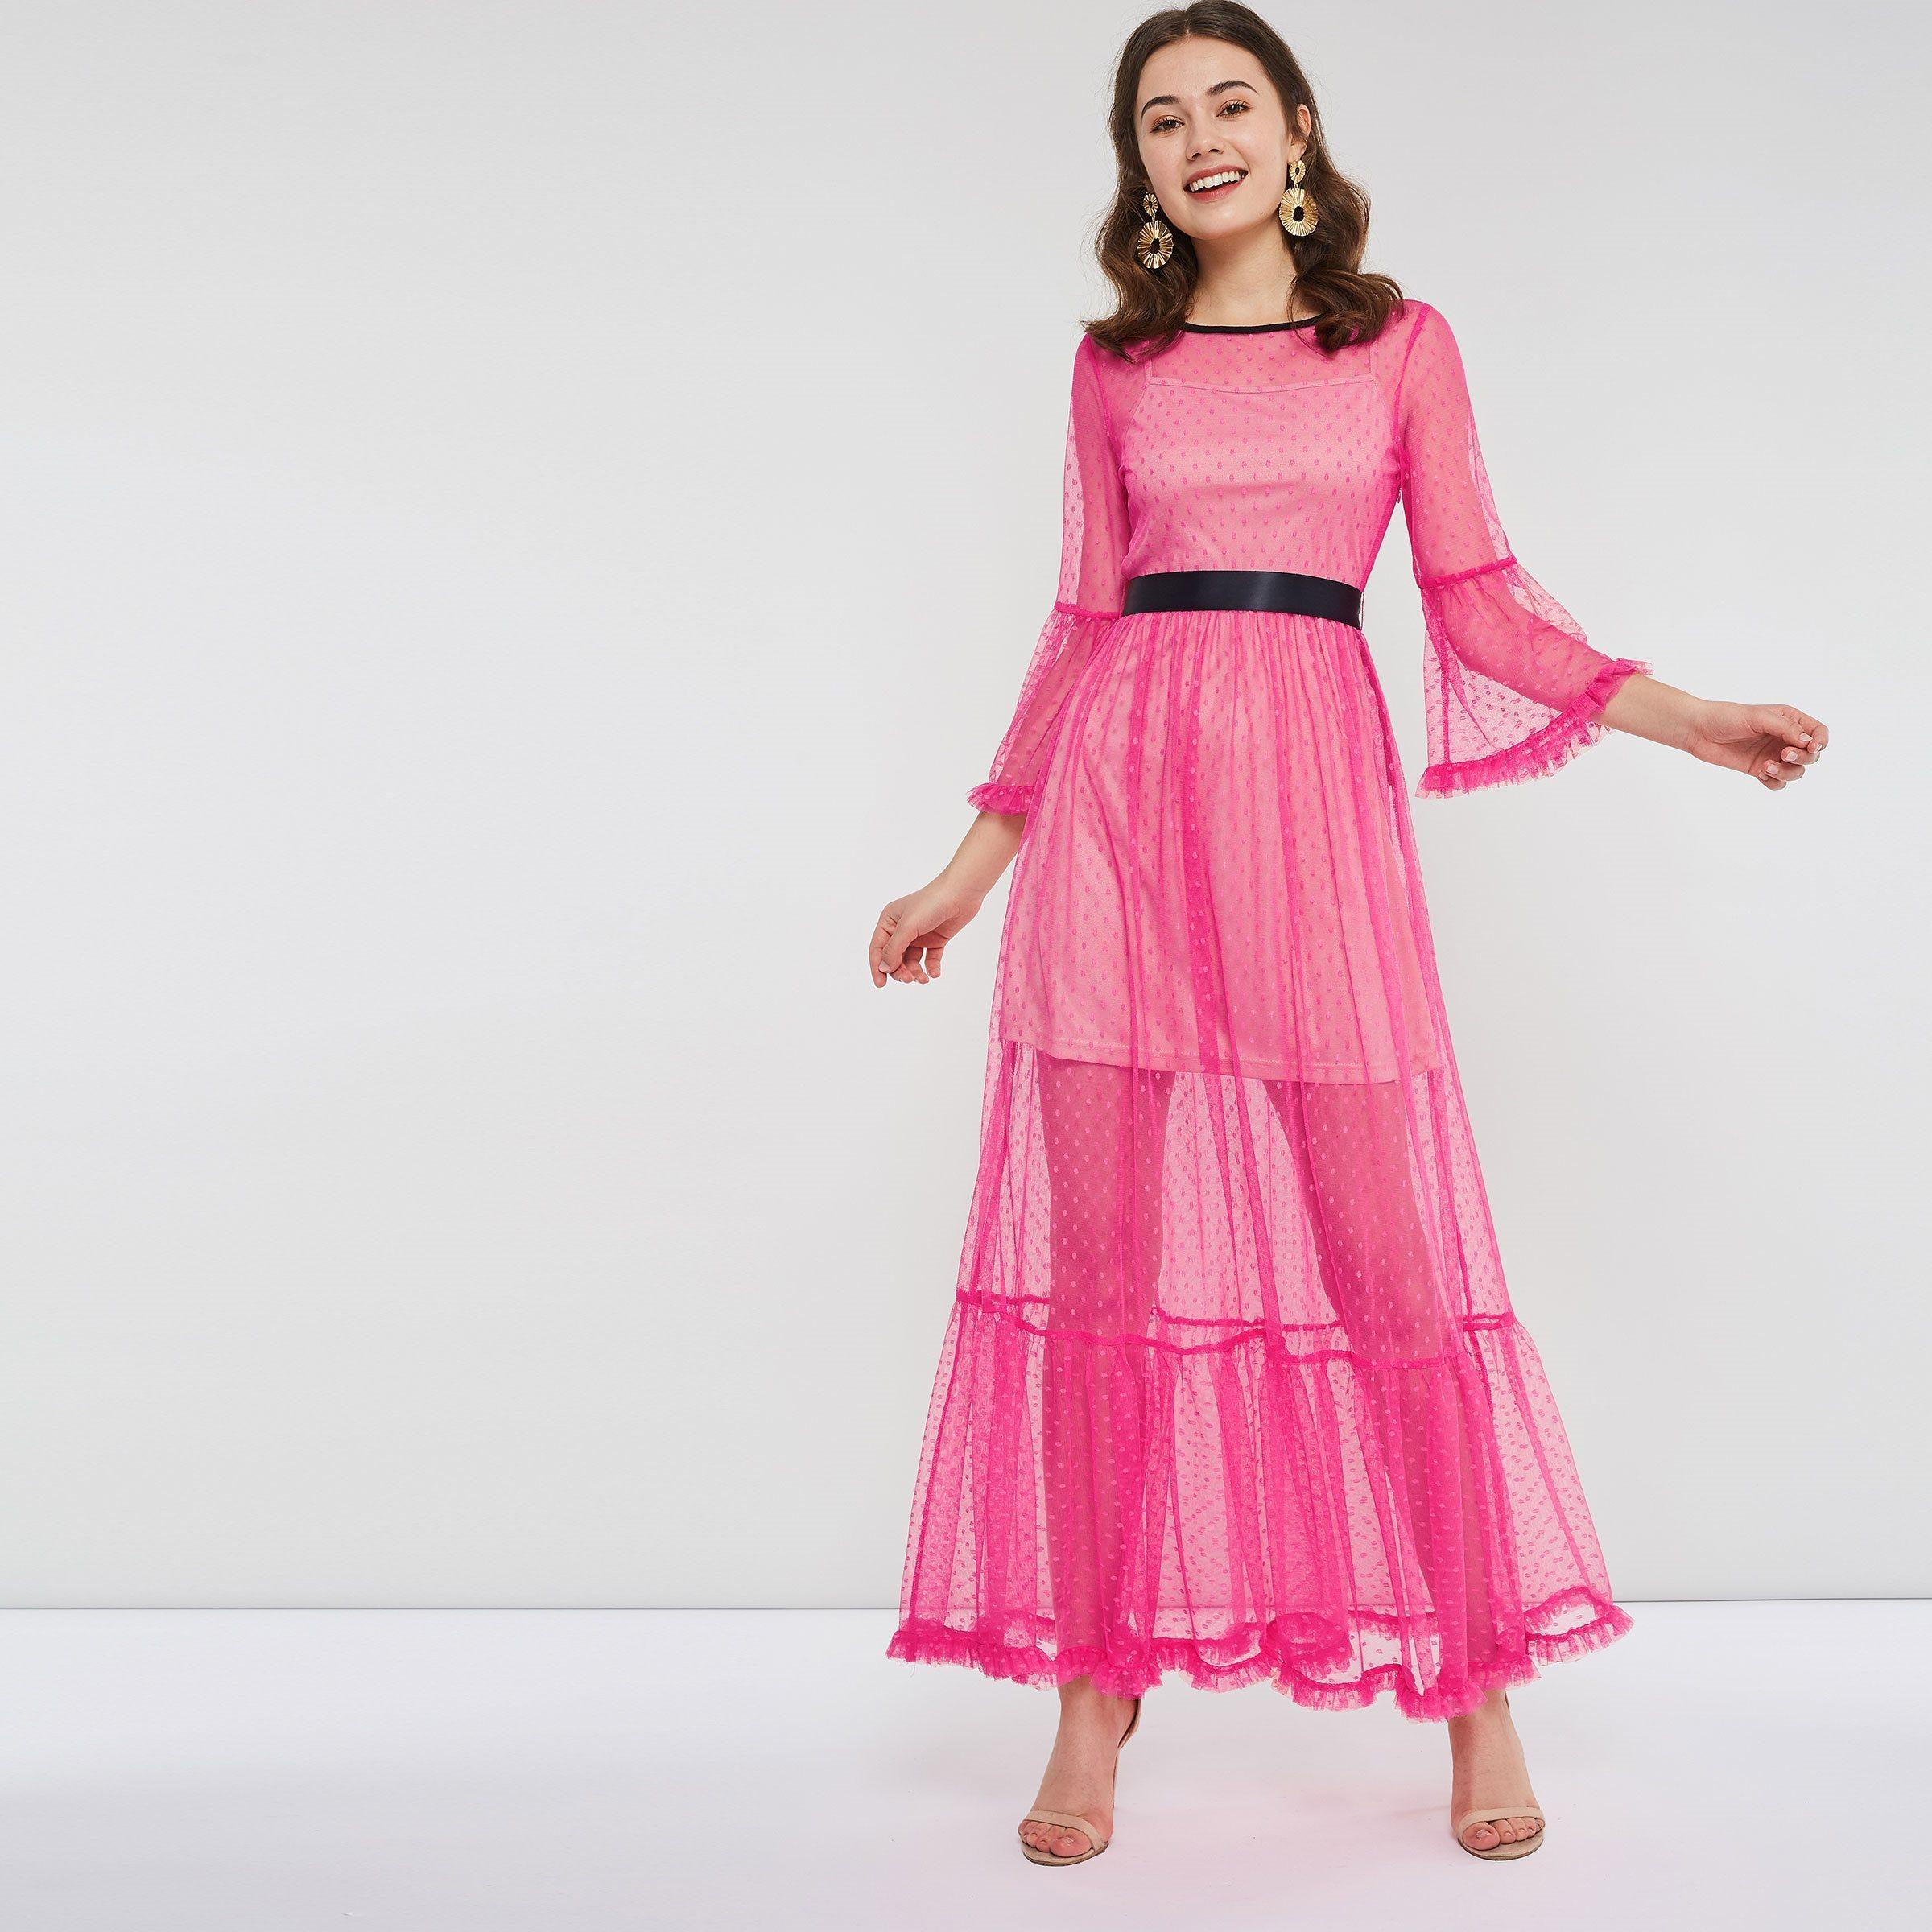 7a6cfc3fa1244 Evening Party Women Two Piece Extra Long Fuchsia Dress Spring Polka Dot  Ribbon Belt Ruffle Rose Pink Mesh Maxi Dresses C19041501